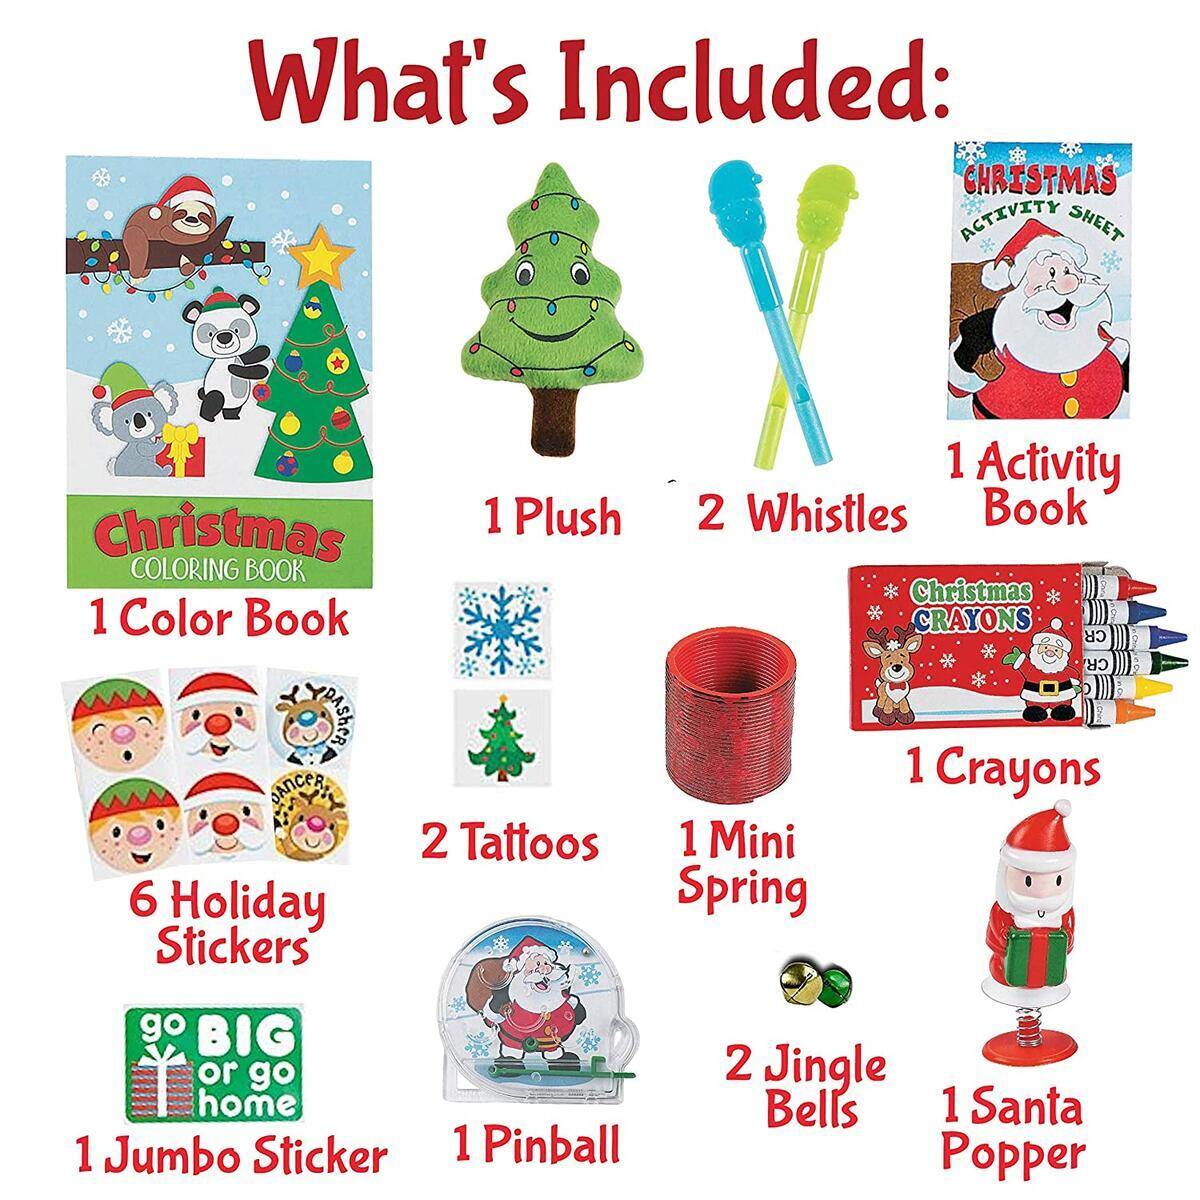 Christmas Candy Stocking Stuffers Box - Holiday Candy Stocking Stuffers For The Naughty And Nice (55 Pieces)